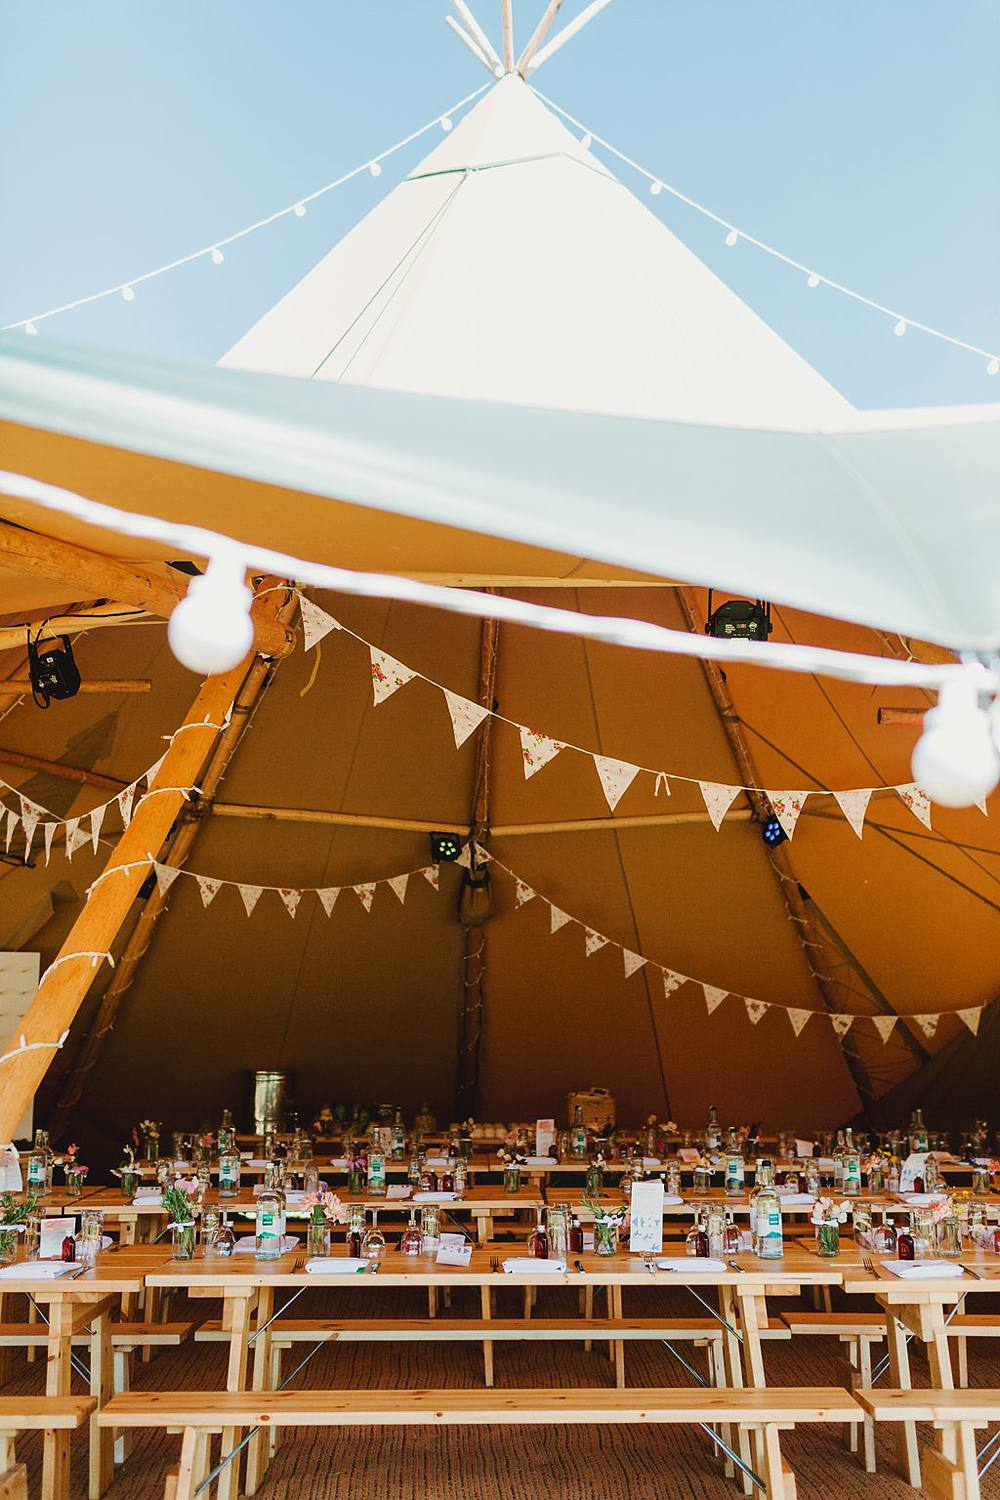 Top Tipi Tips, Devine Bride, Outdoor Wedding, Festival Wedding, Dry Hire Wedding, Giant Wedding Balloons, UK summer Wedding, DIY Decor, The Dawdling Duck, Bunting, Tipi Wedding, Donut Wall